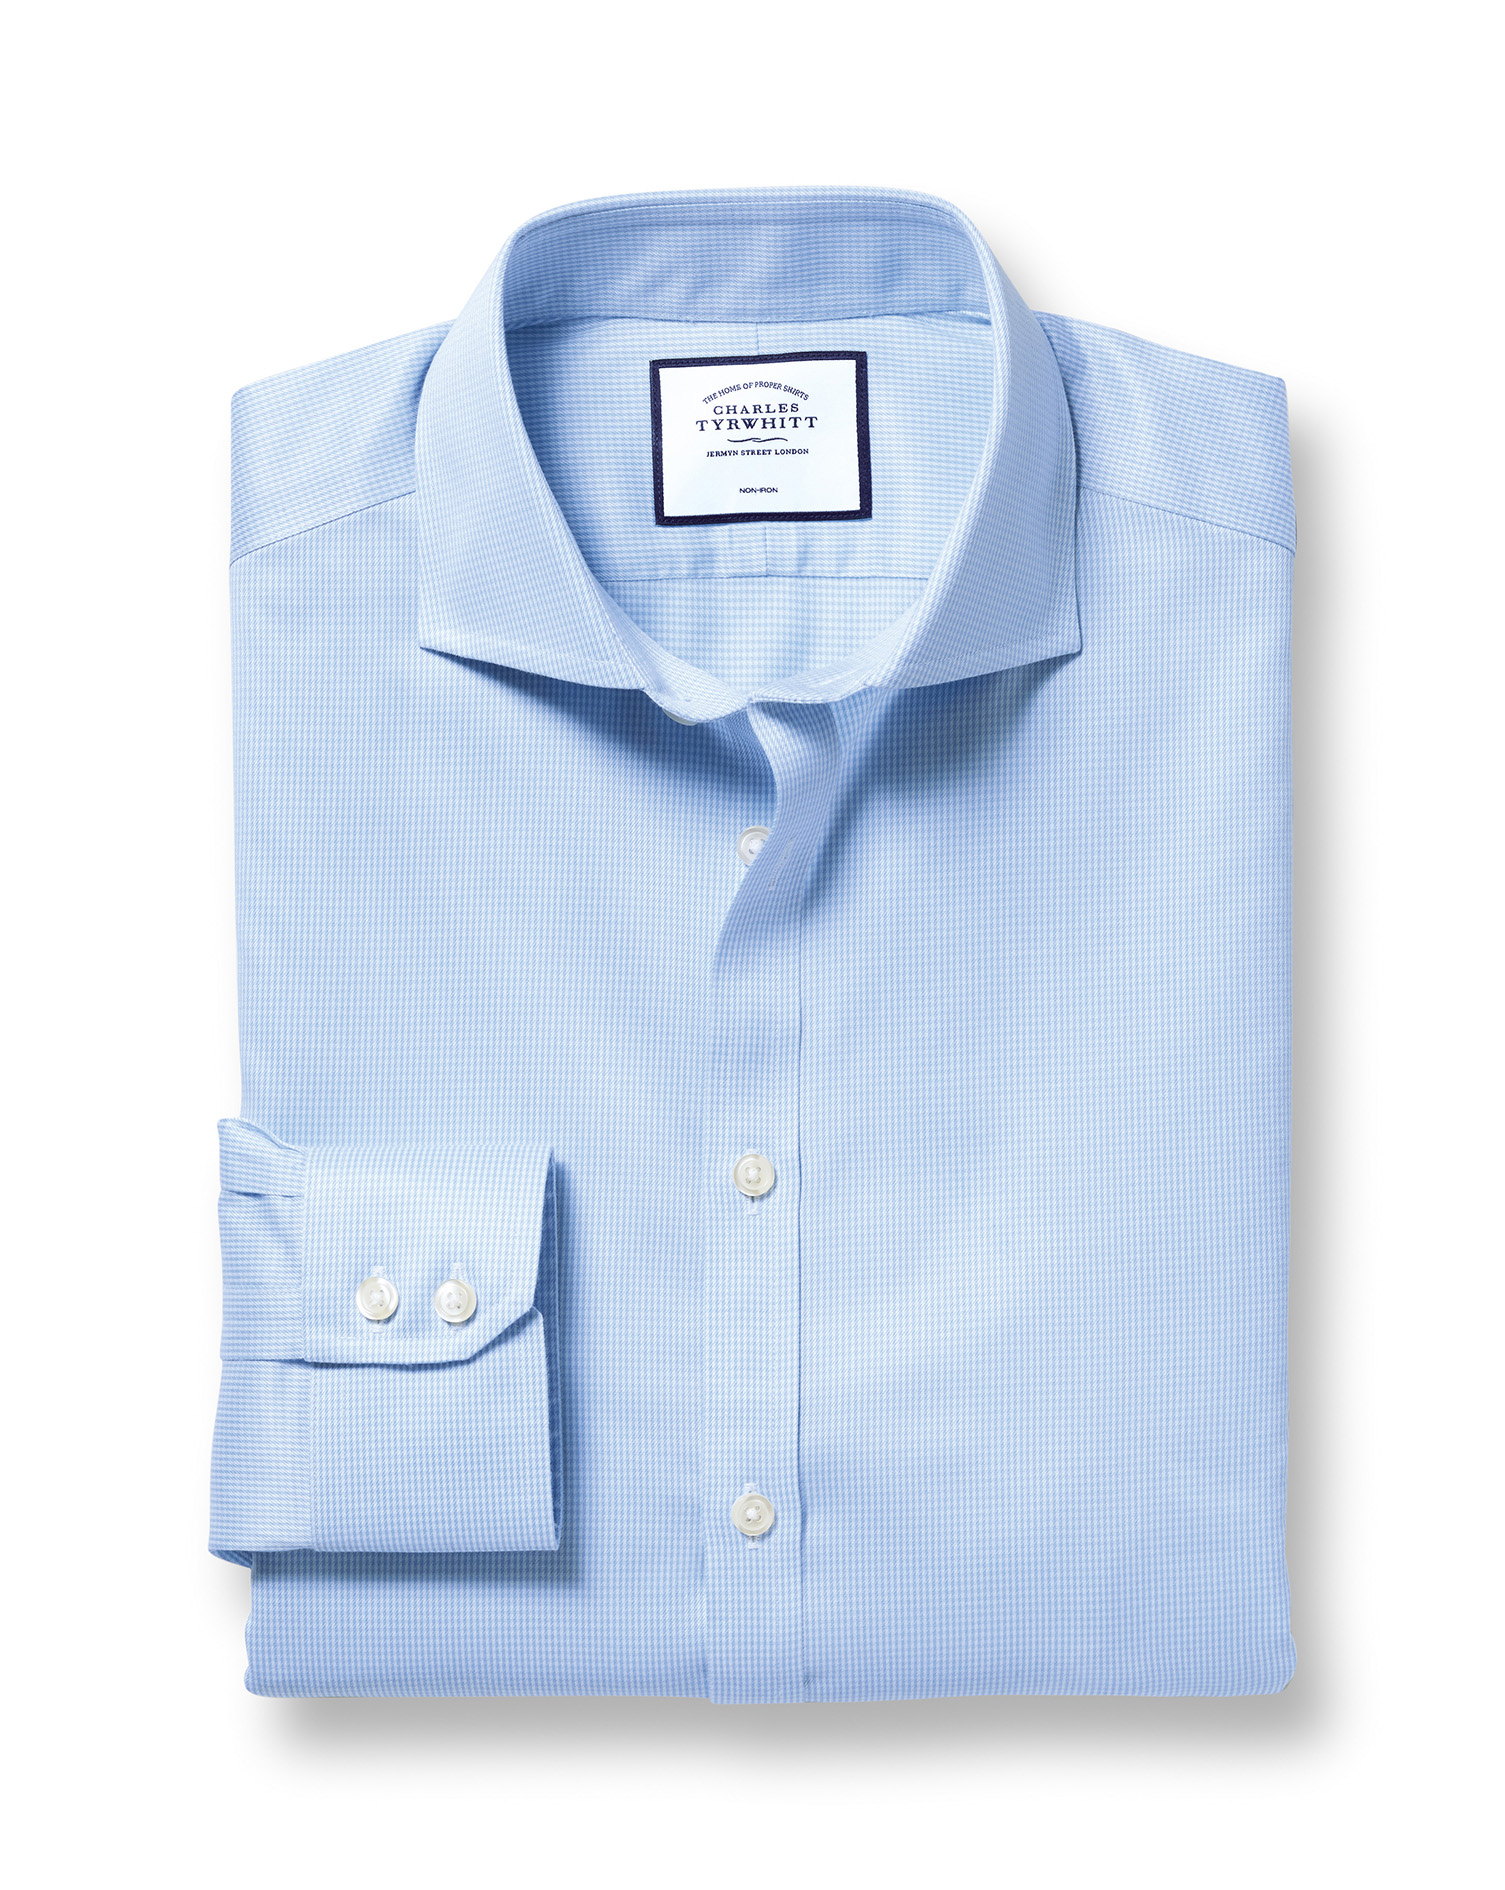 Slim Fit Non-Iron Cutaway Sky Blue Puppytooth Cotton Formal Shirt Single Cuff Size 15.5/35 by Charle